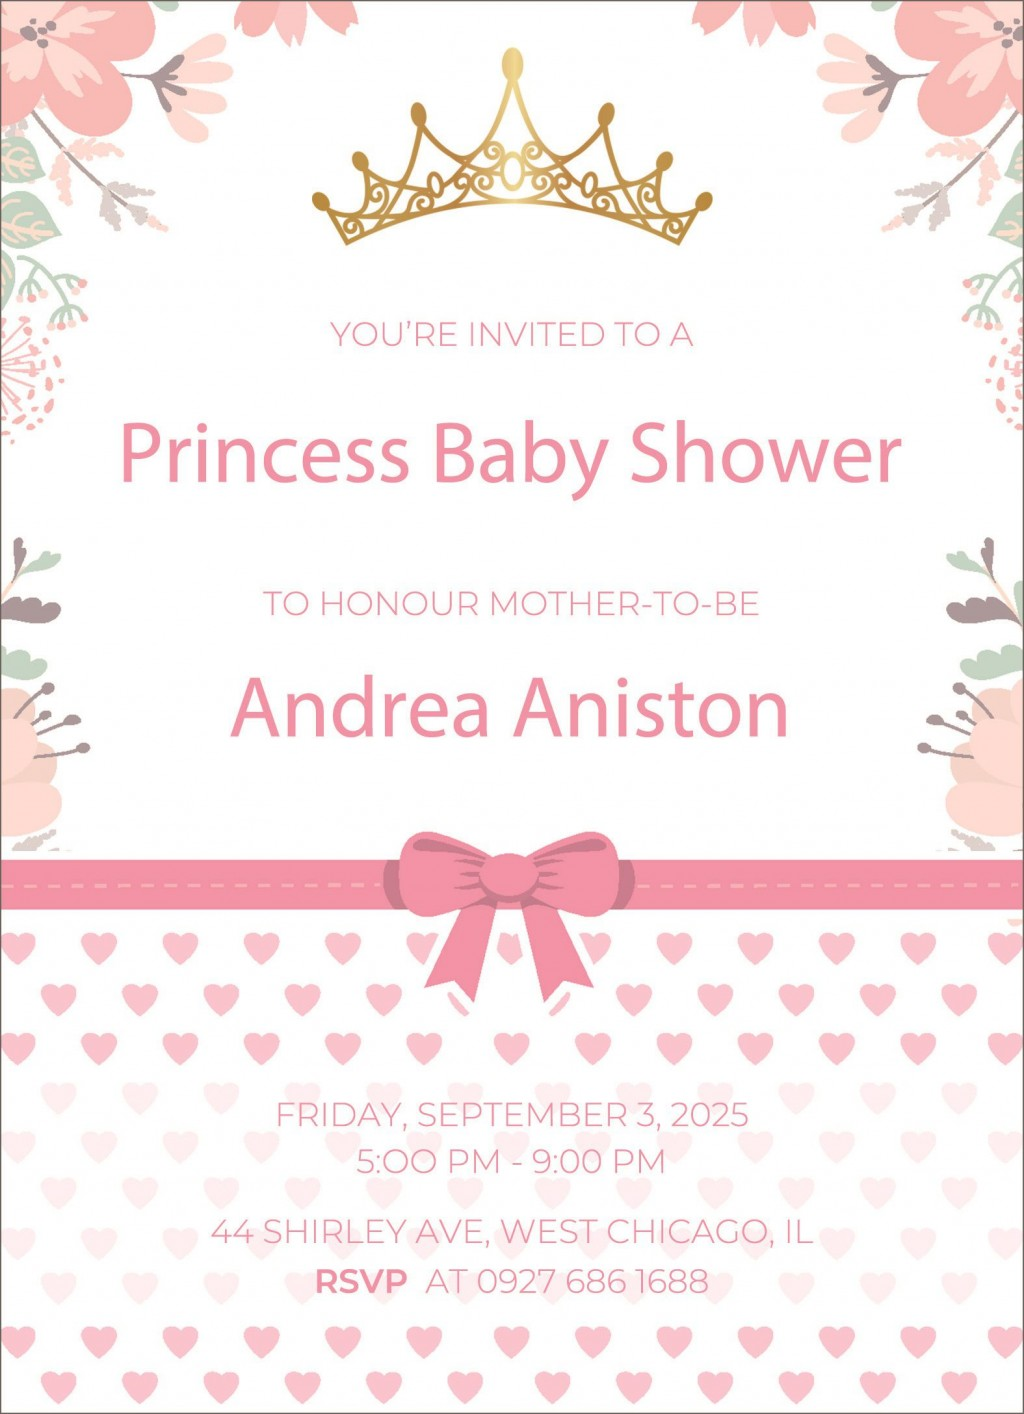 003 Formidable Baby Shower Invitation Free Template Picture  Templates Online Printable E-invitation Card Design DownloadLarge